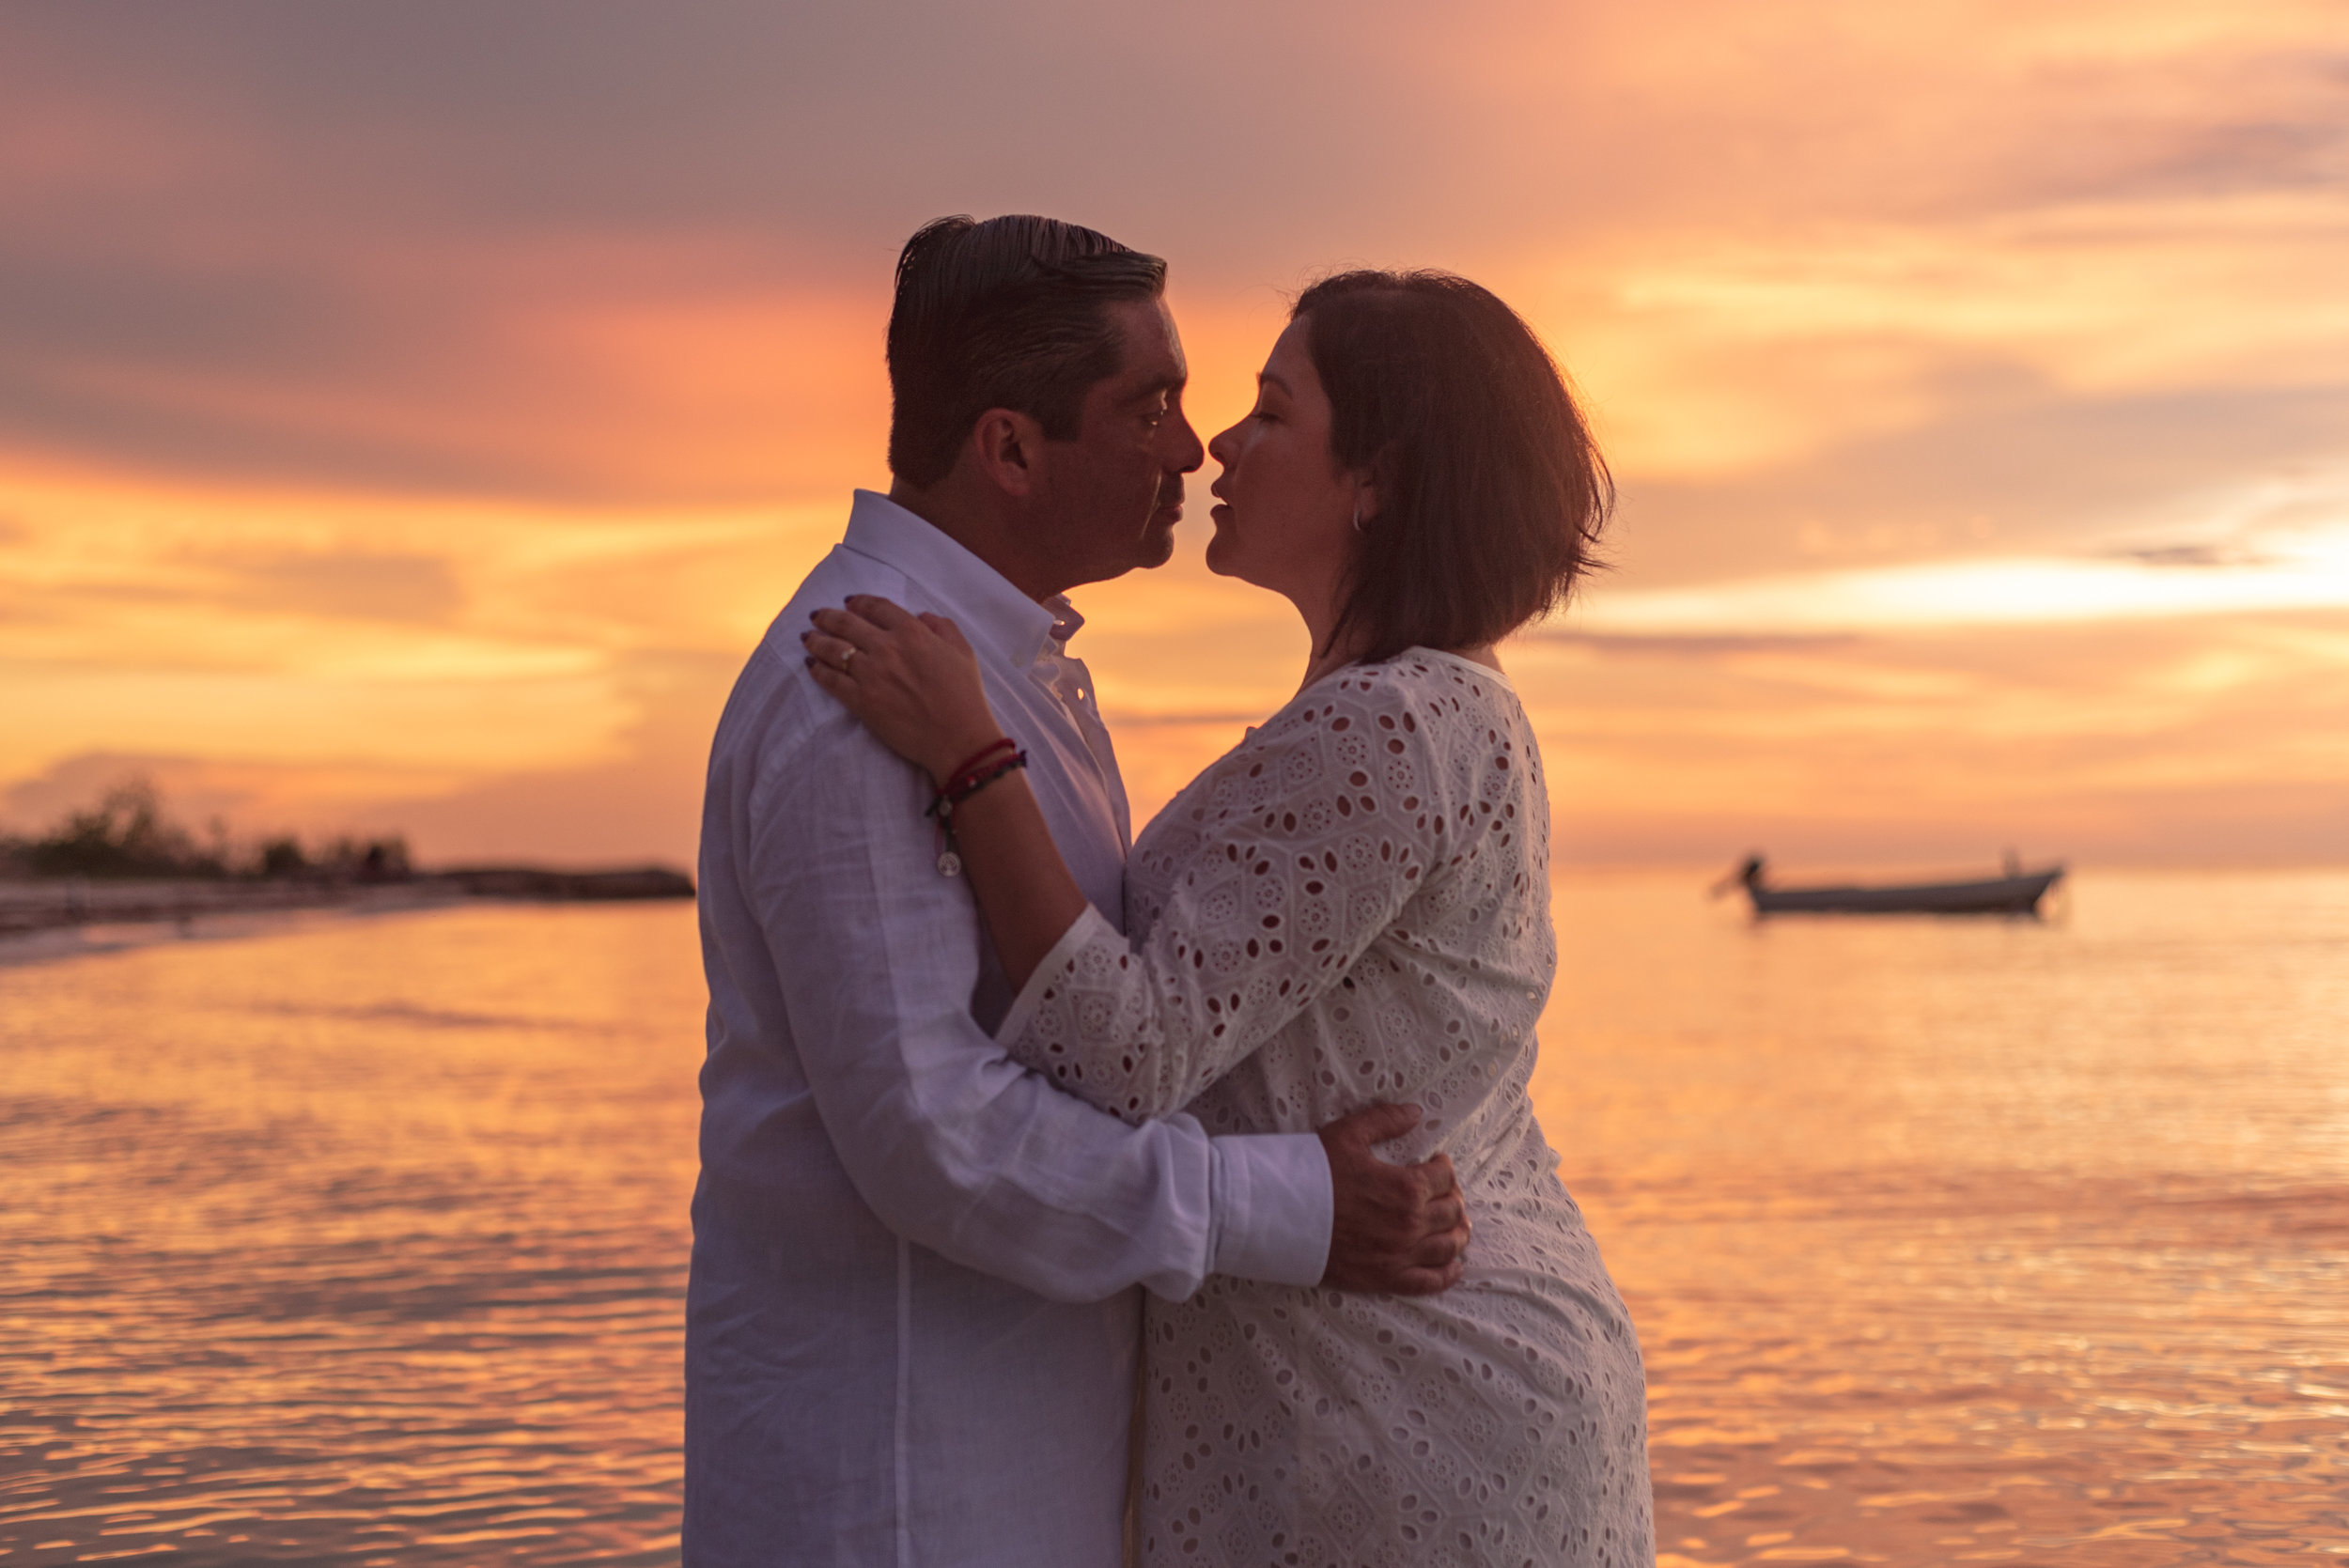 Holbox couples photoshoots f&f series 8 by @emmanuelphotoartist